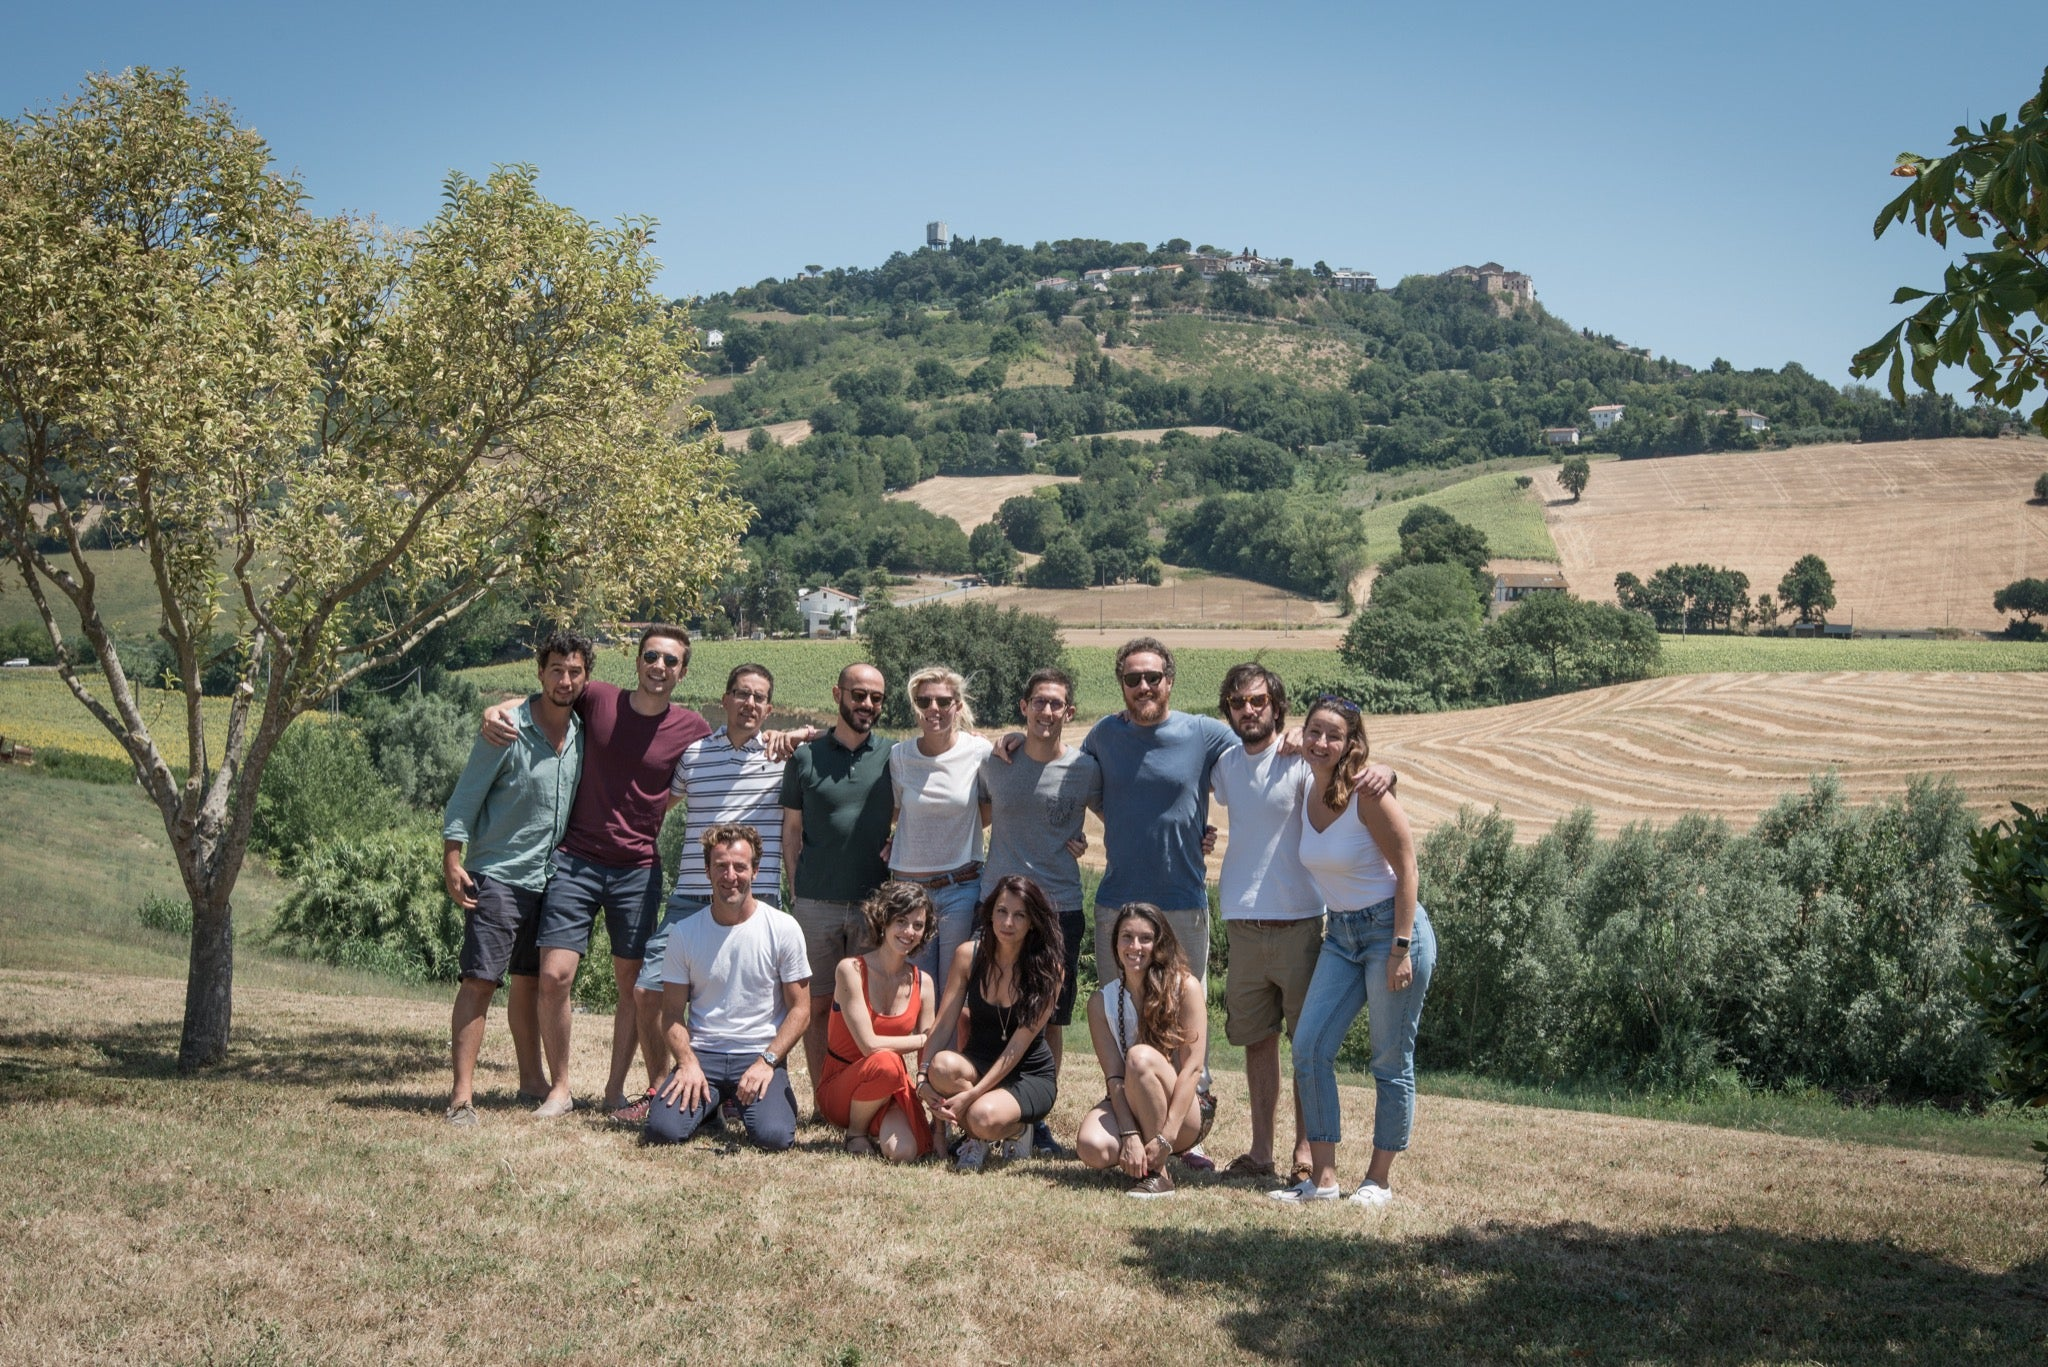 The Velasca team during an offsite.